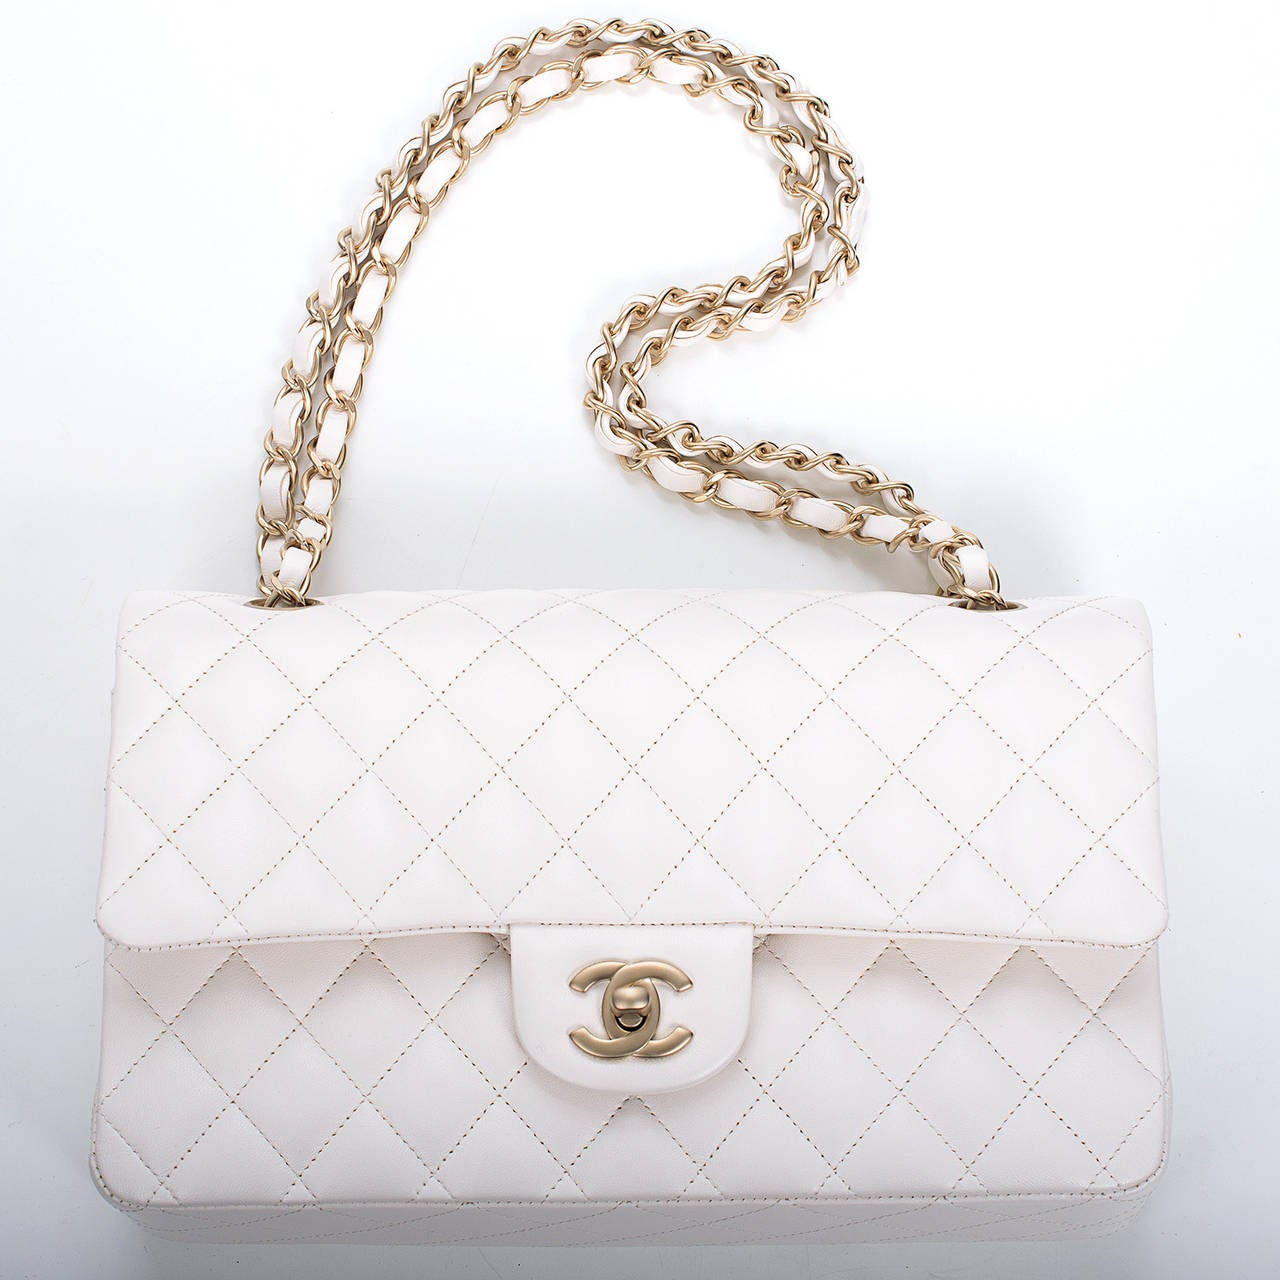 Chanel White Quilted Lambskin Large Classic Double Flap Bag Gold Hardware For Sale 1